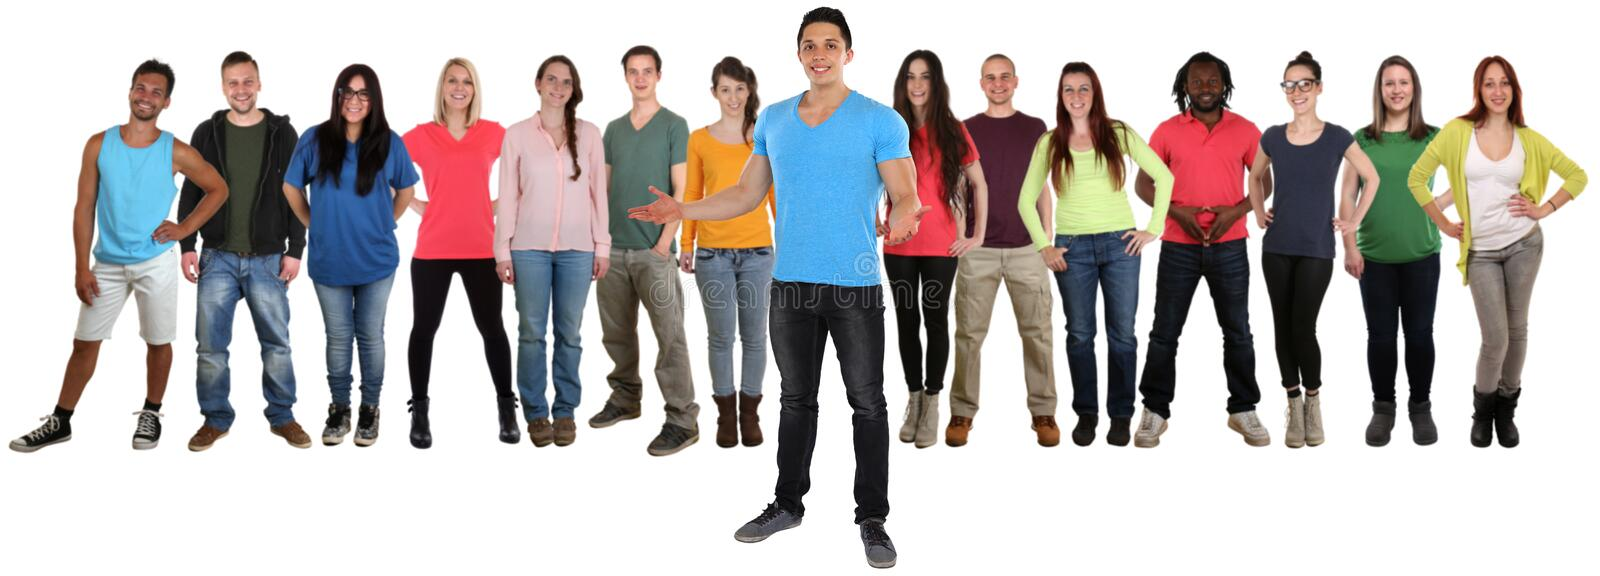 Group of young people friends welcome inviting invitation standing isolated stock images